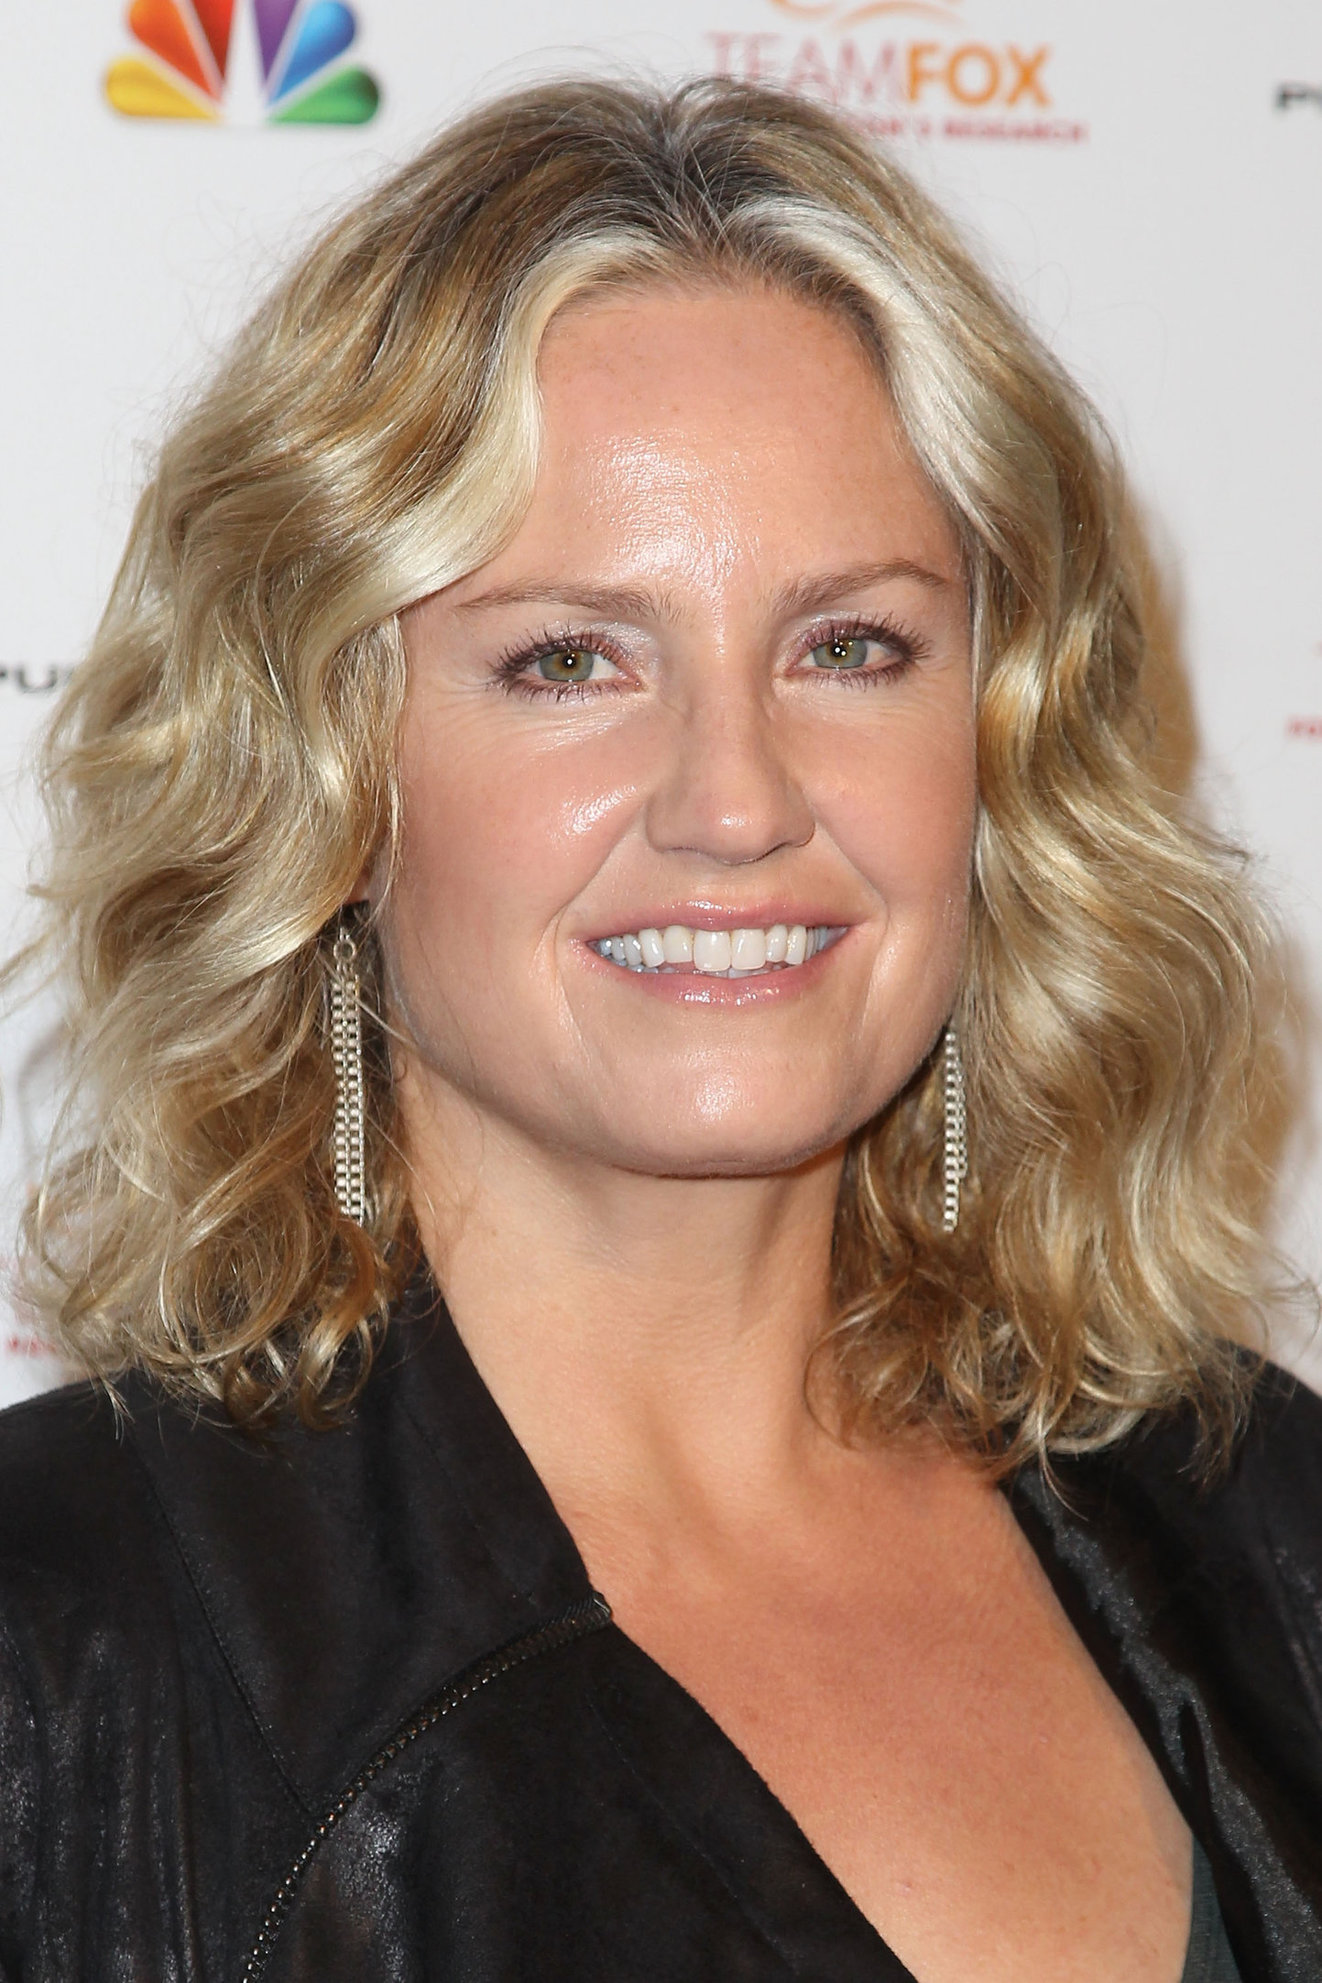 Sherry Stringfield Raising The Bar To End Parkinson's (Dec 5, 2012)